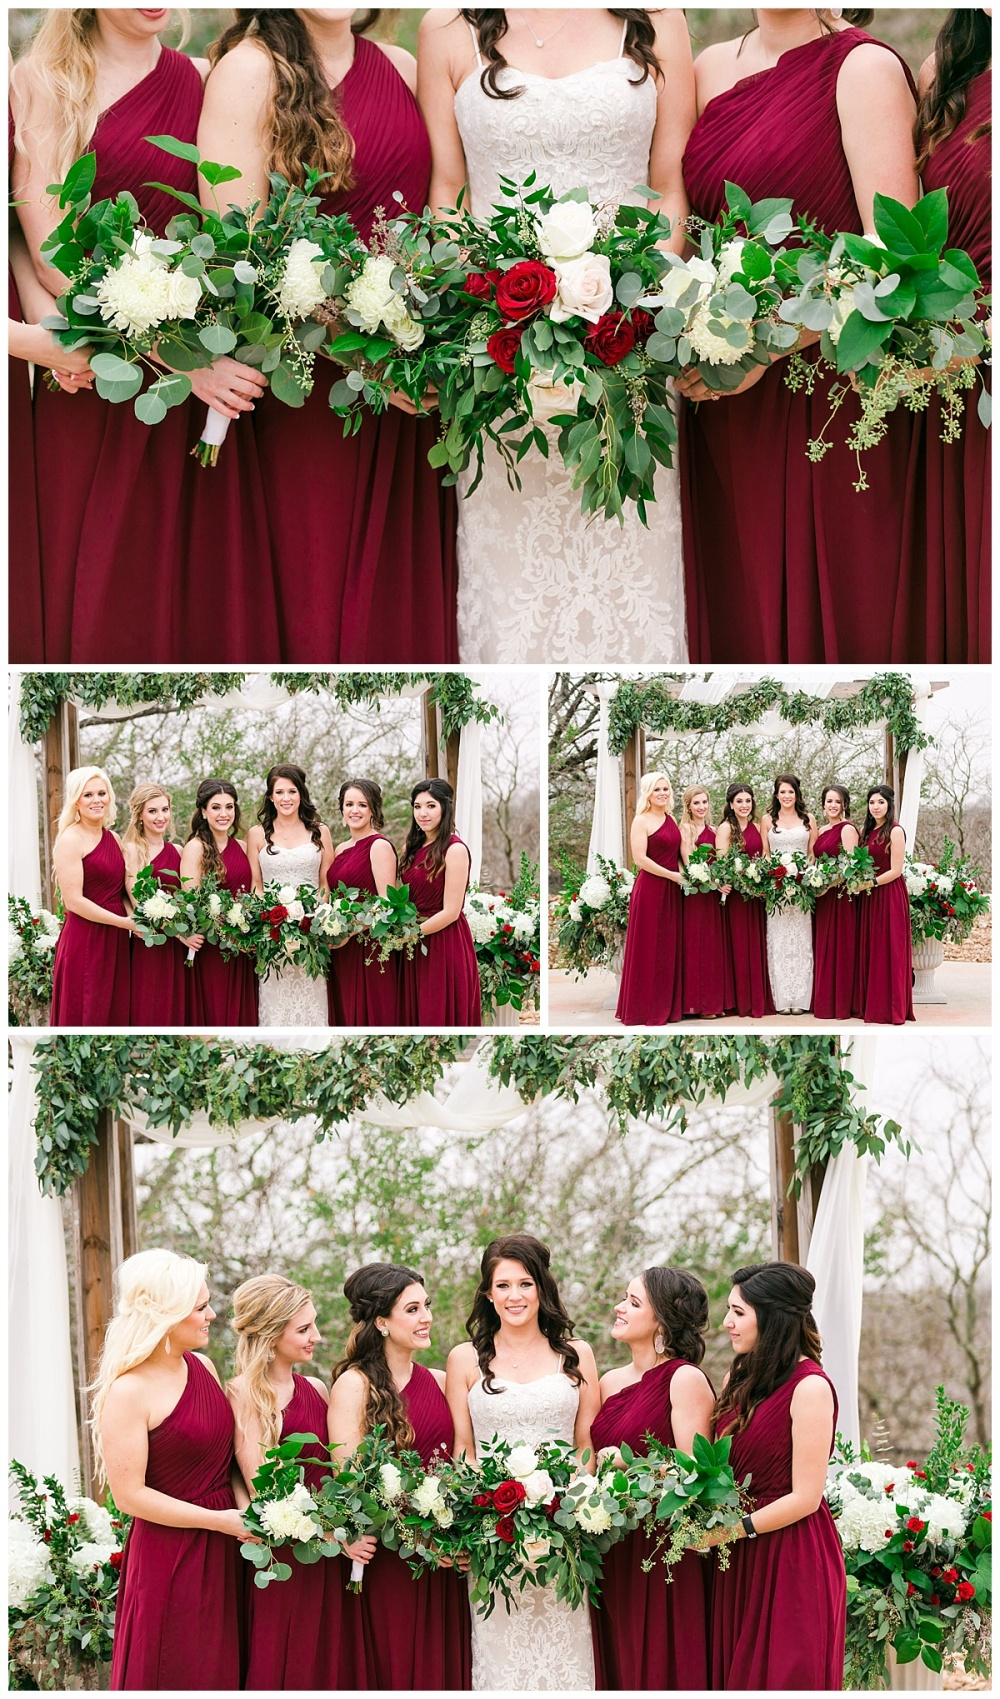 Carly-Barton-Photography-Geronimo-Oaks-Wedding-Venue-Texas-Hill-Country-Ronnie-Sarah_0108.jpg